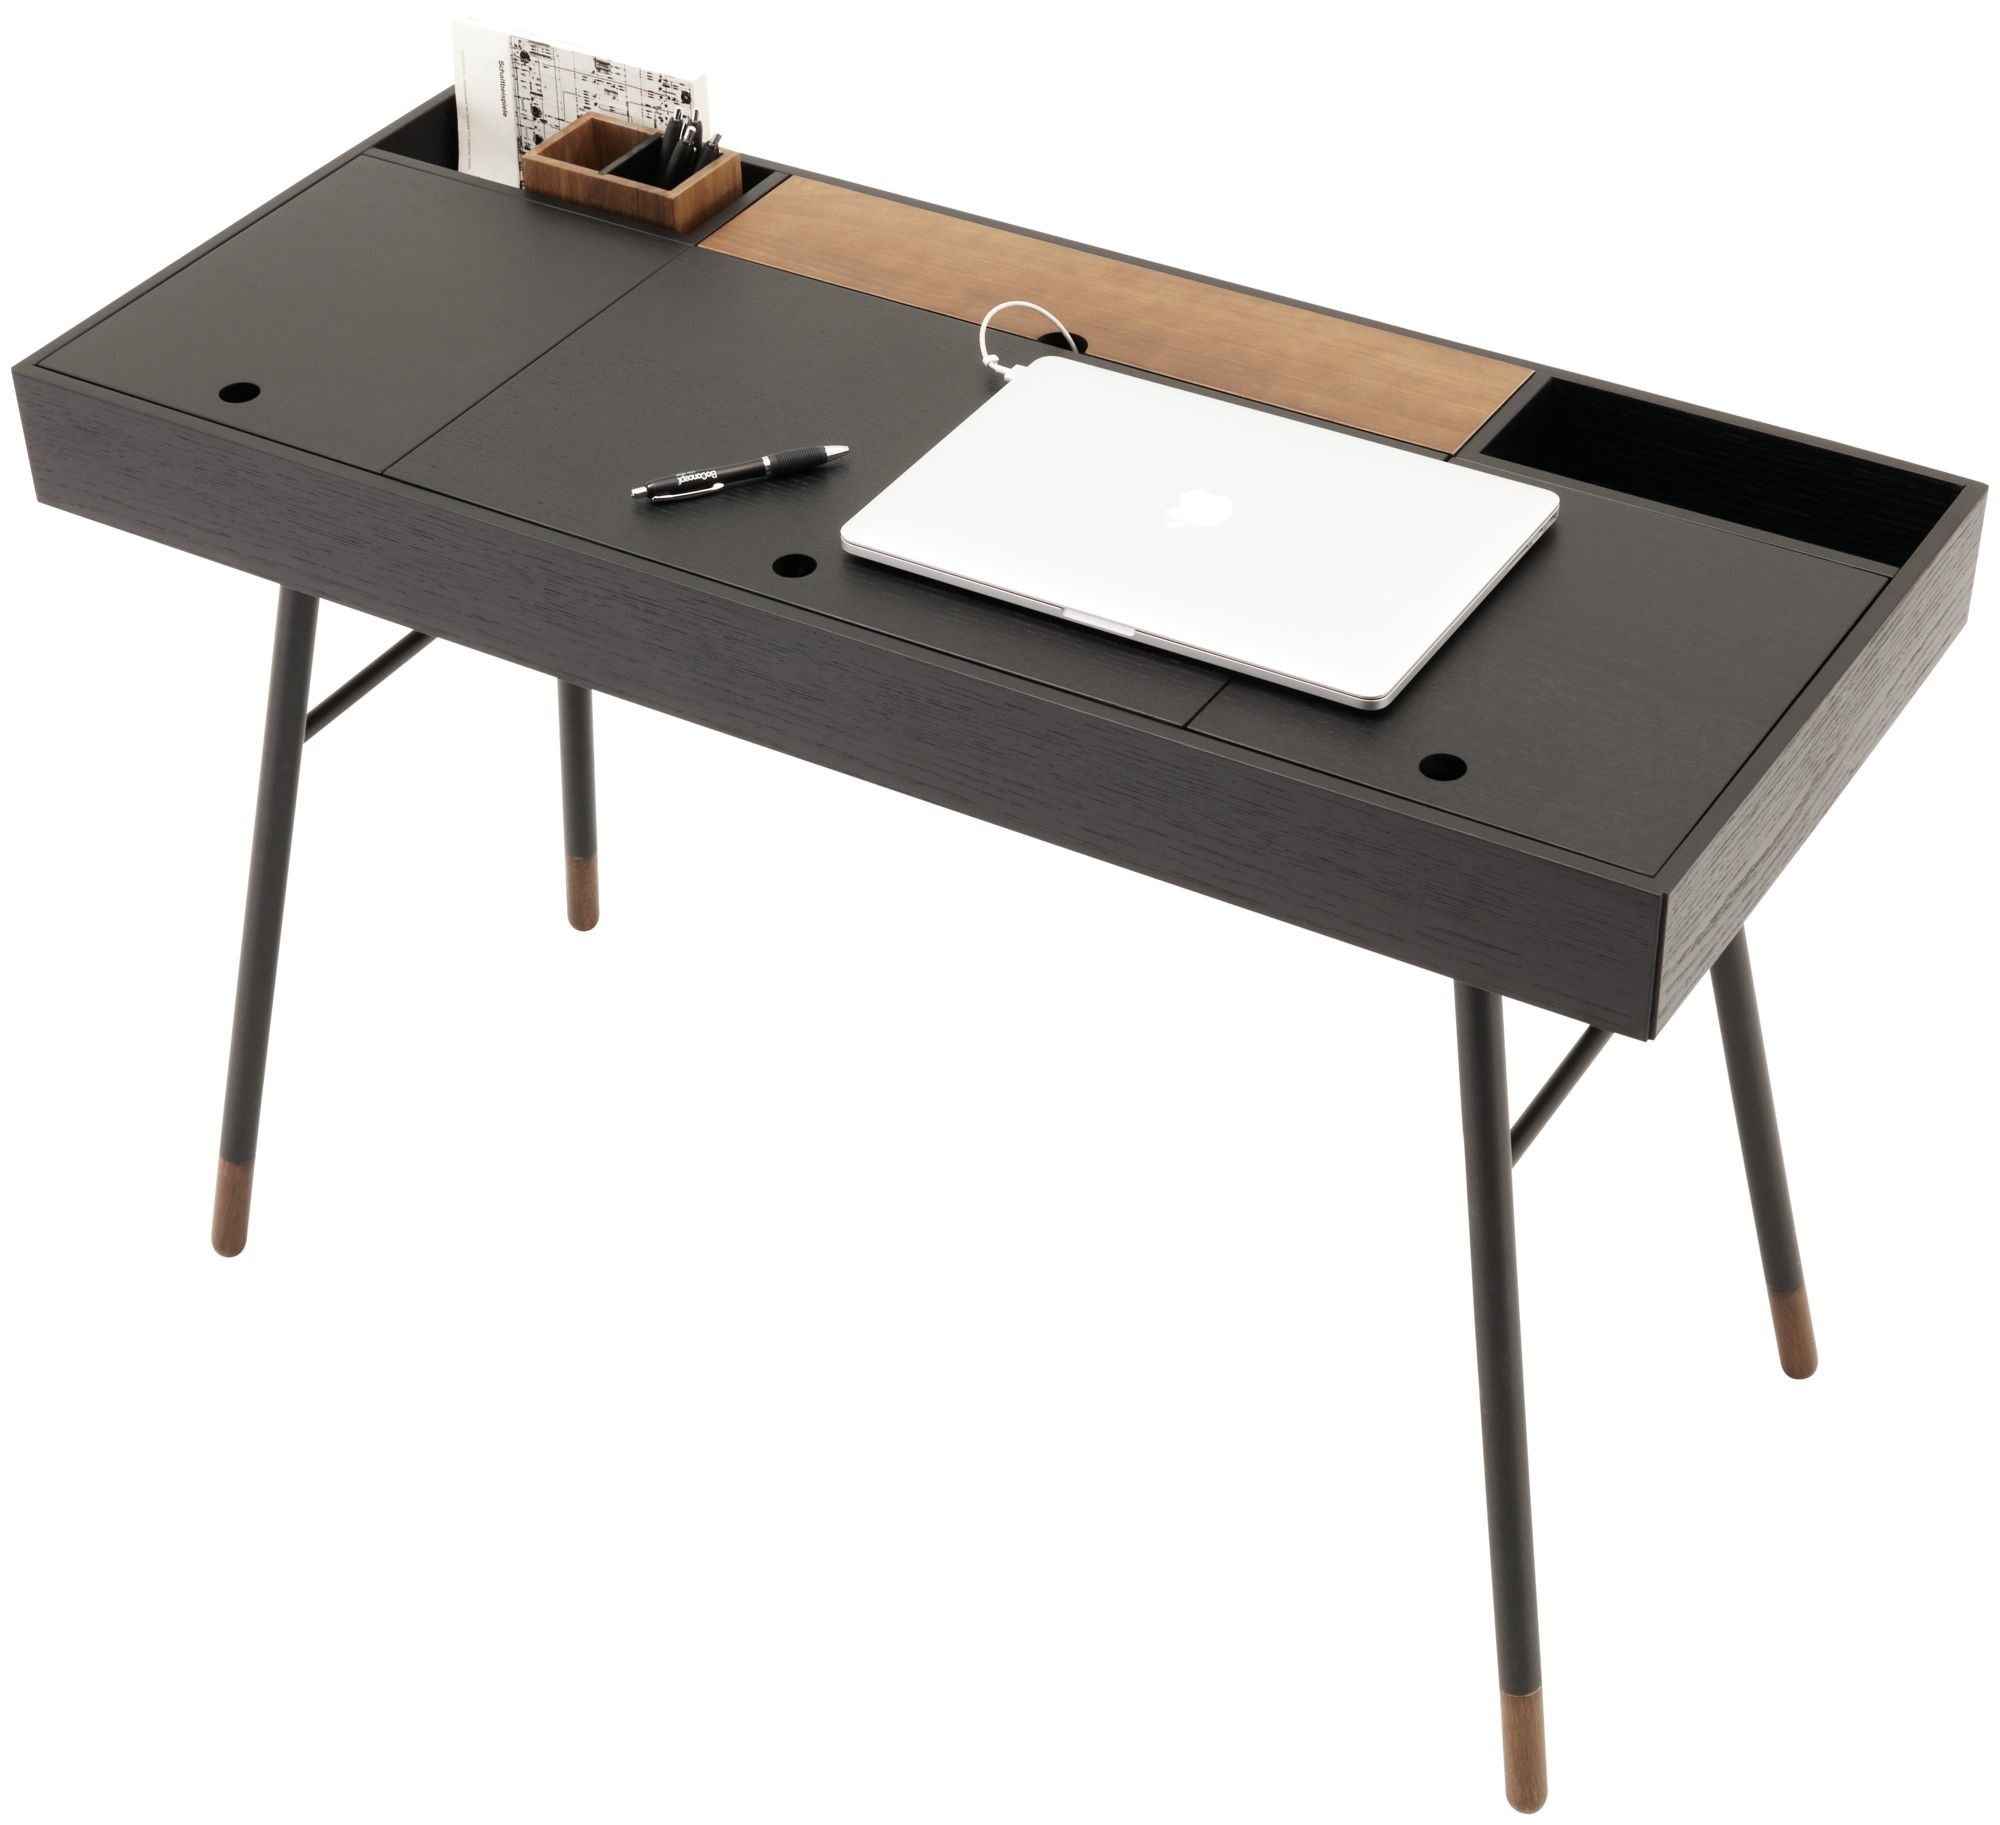 modern desks contemporary desks boconcept study room designmodern desks contemporary desks boconcept